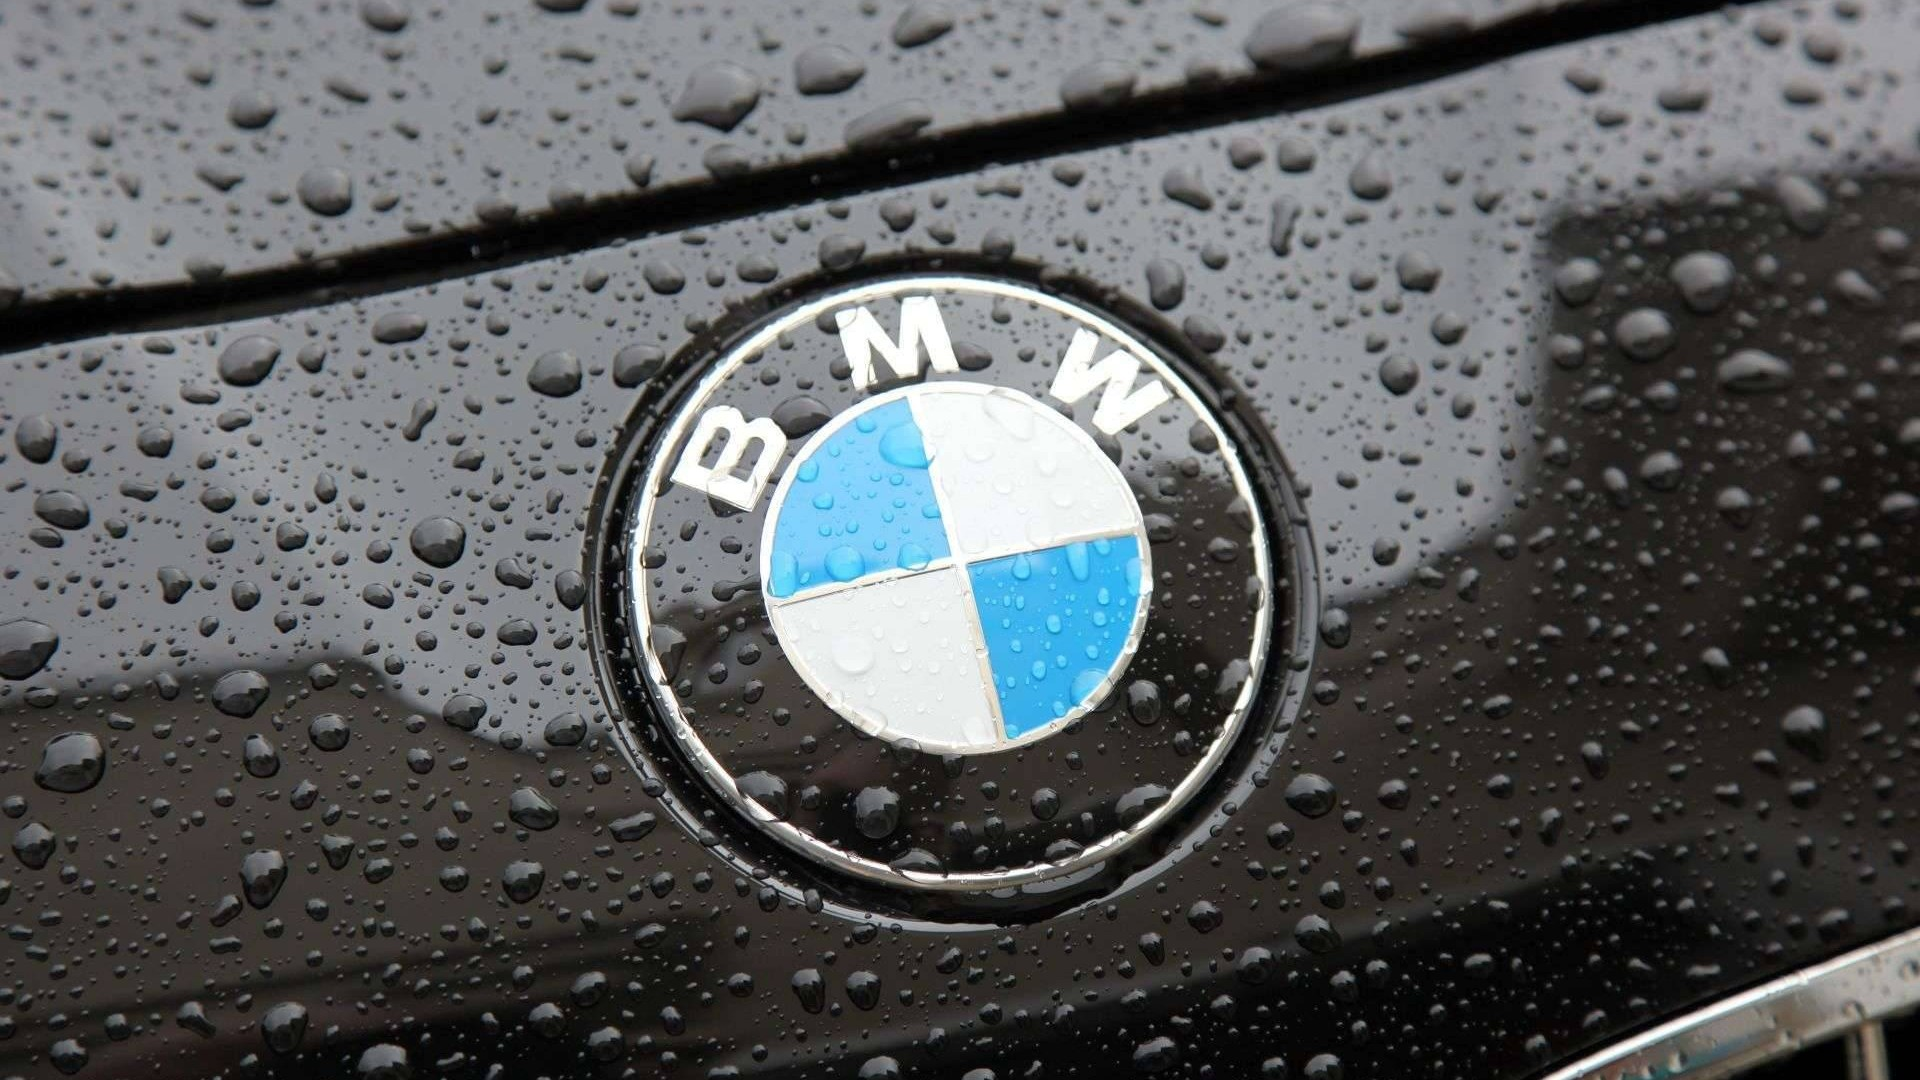 Cool Bmw Emblem For Sale Aratorn Sport Cars